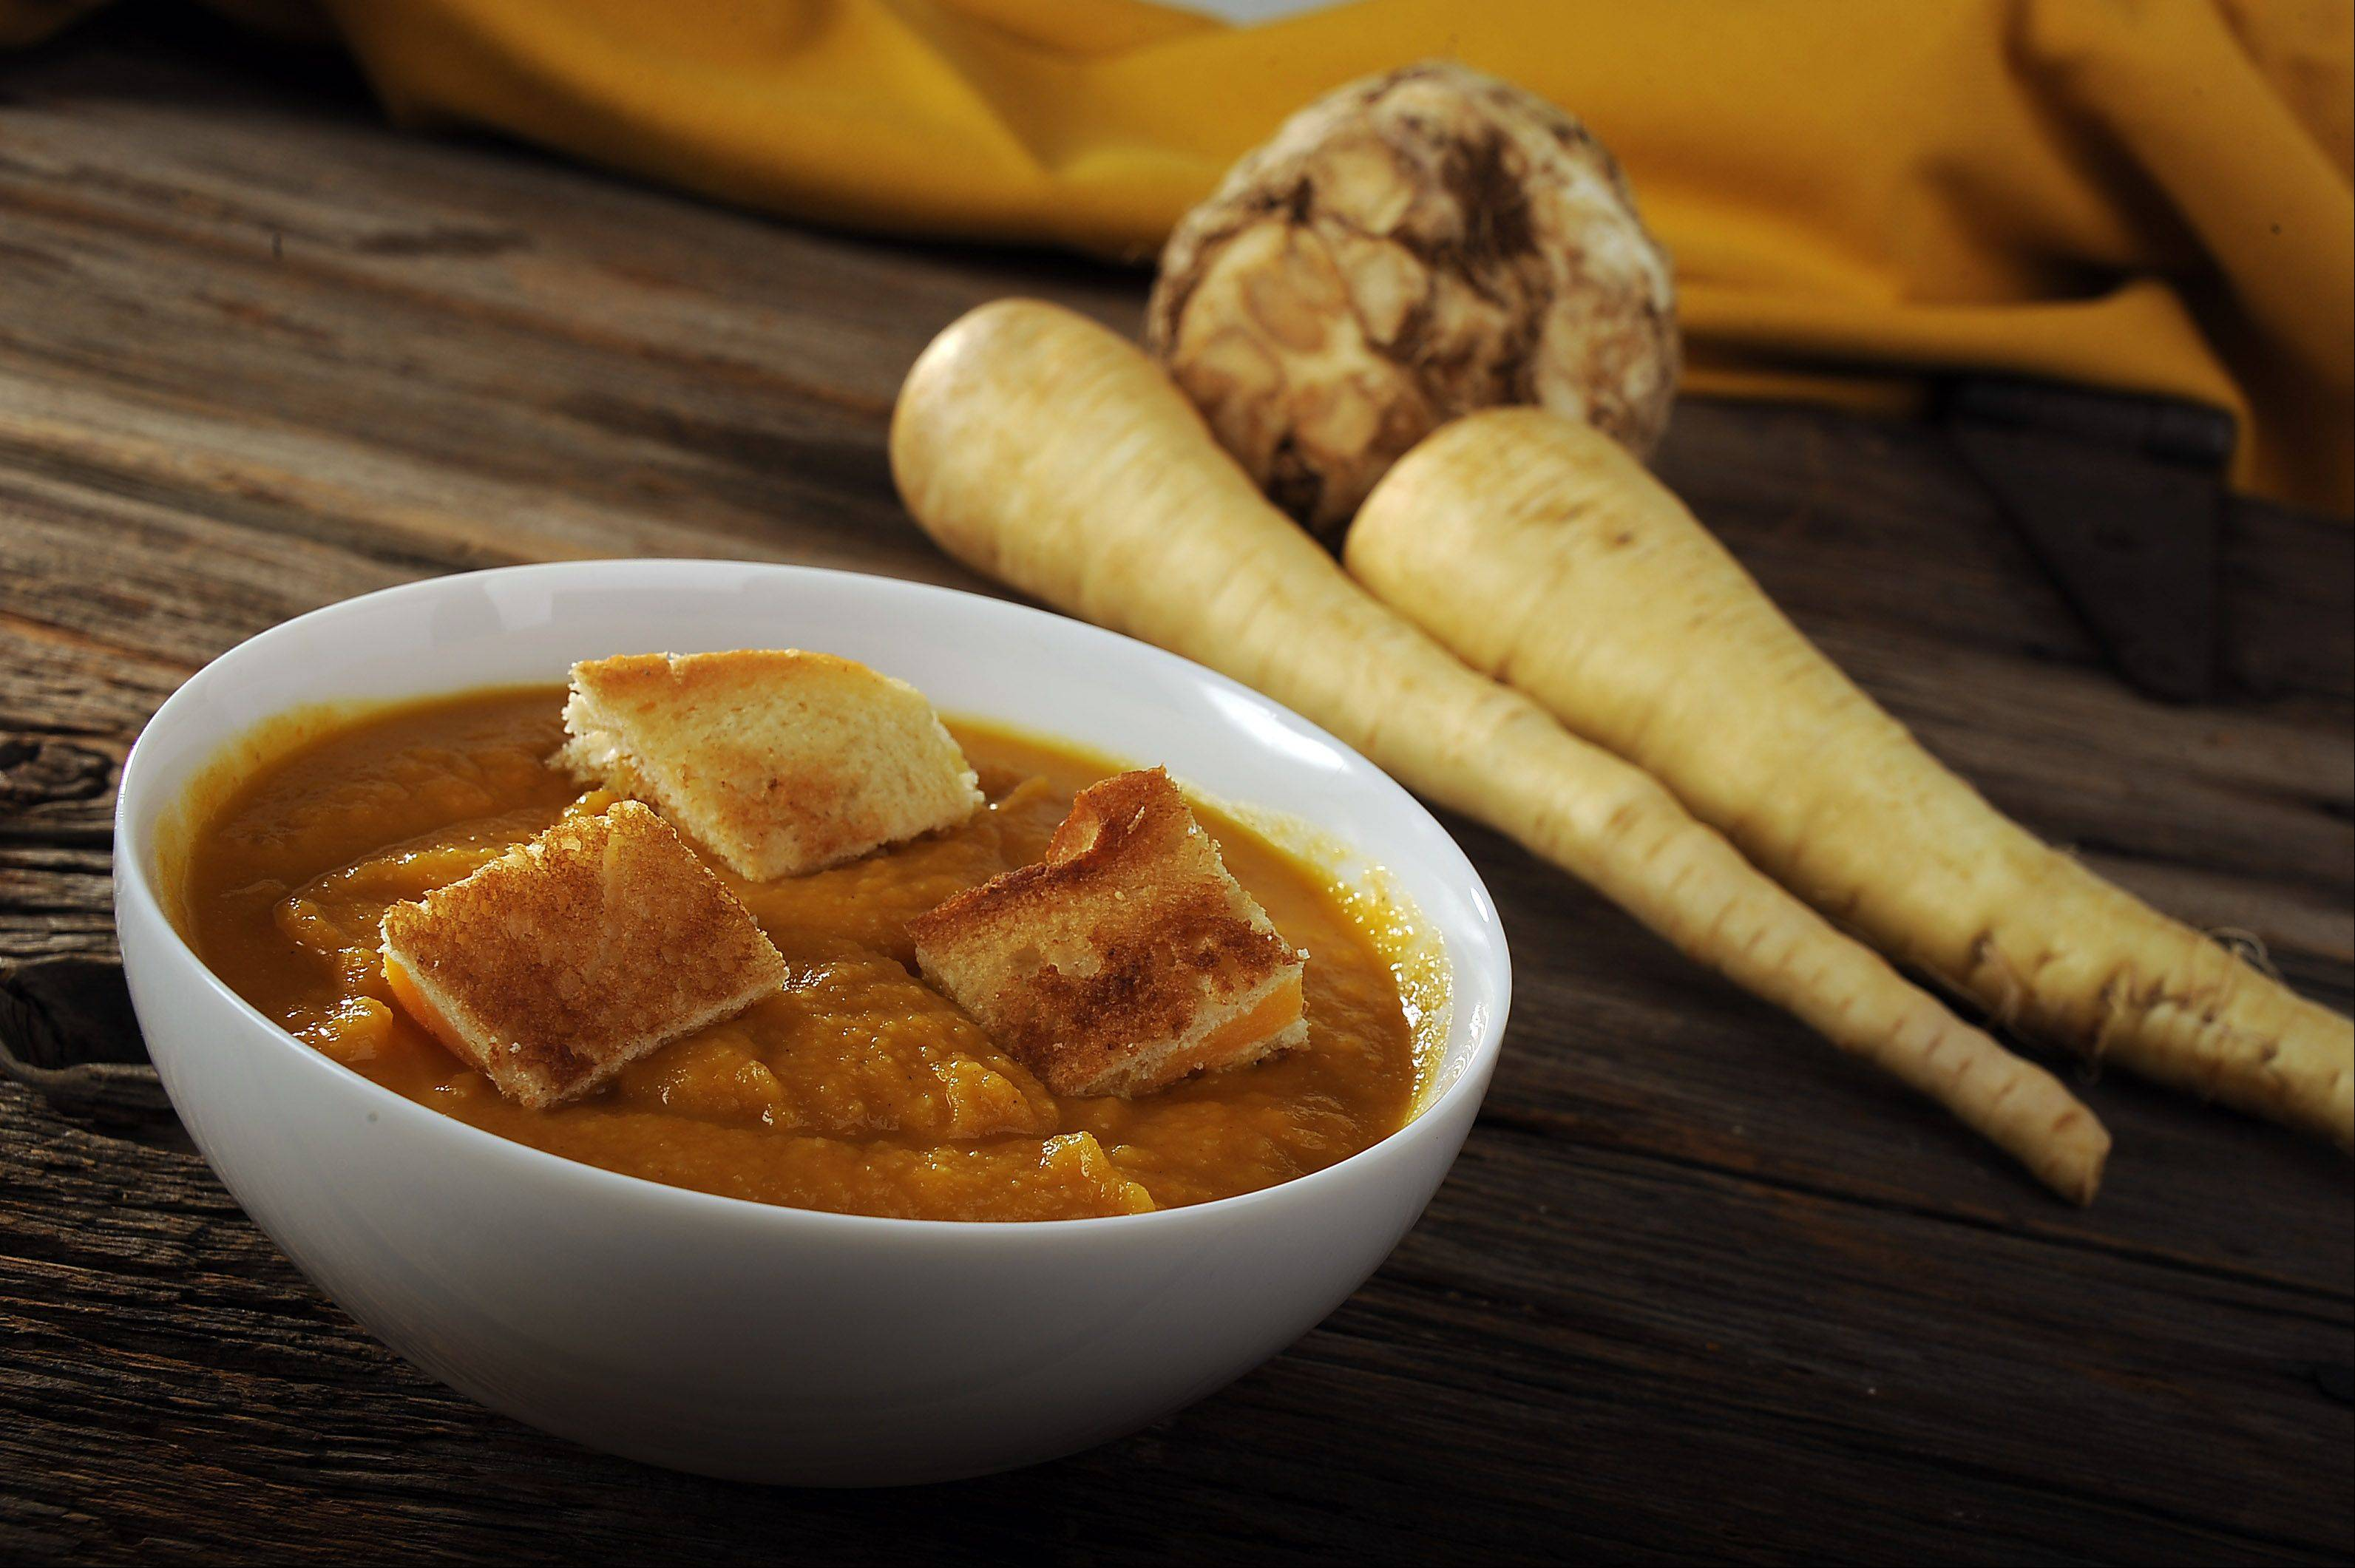 Roasted Root Vegetable Soup with Grilled Cheese Croutons